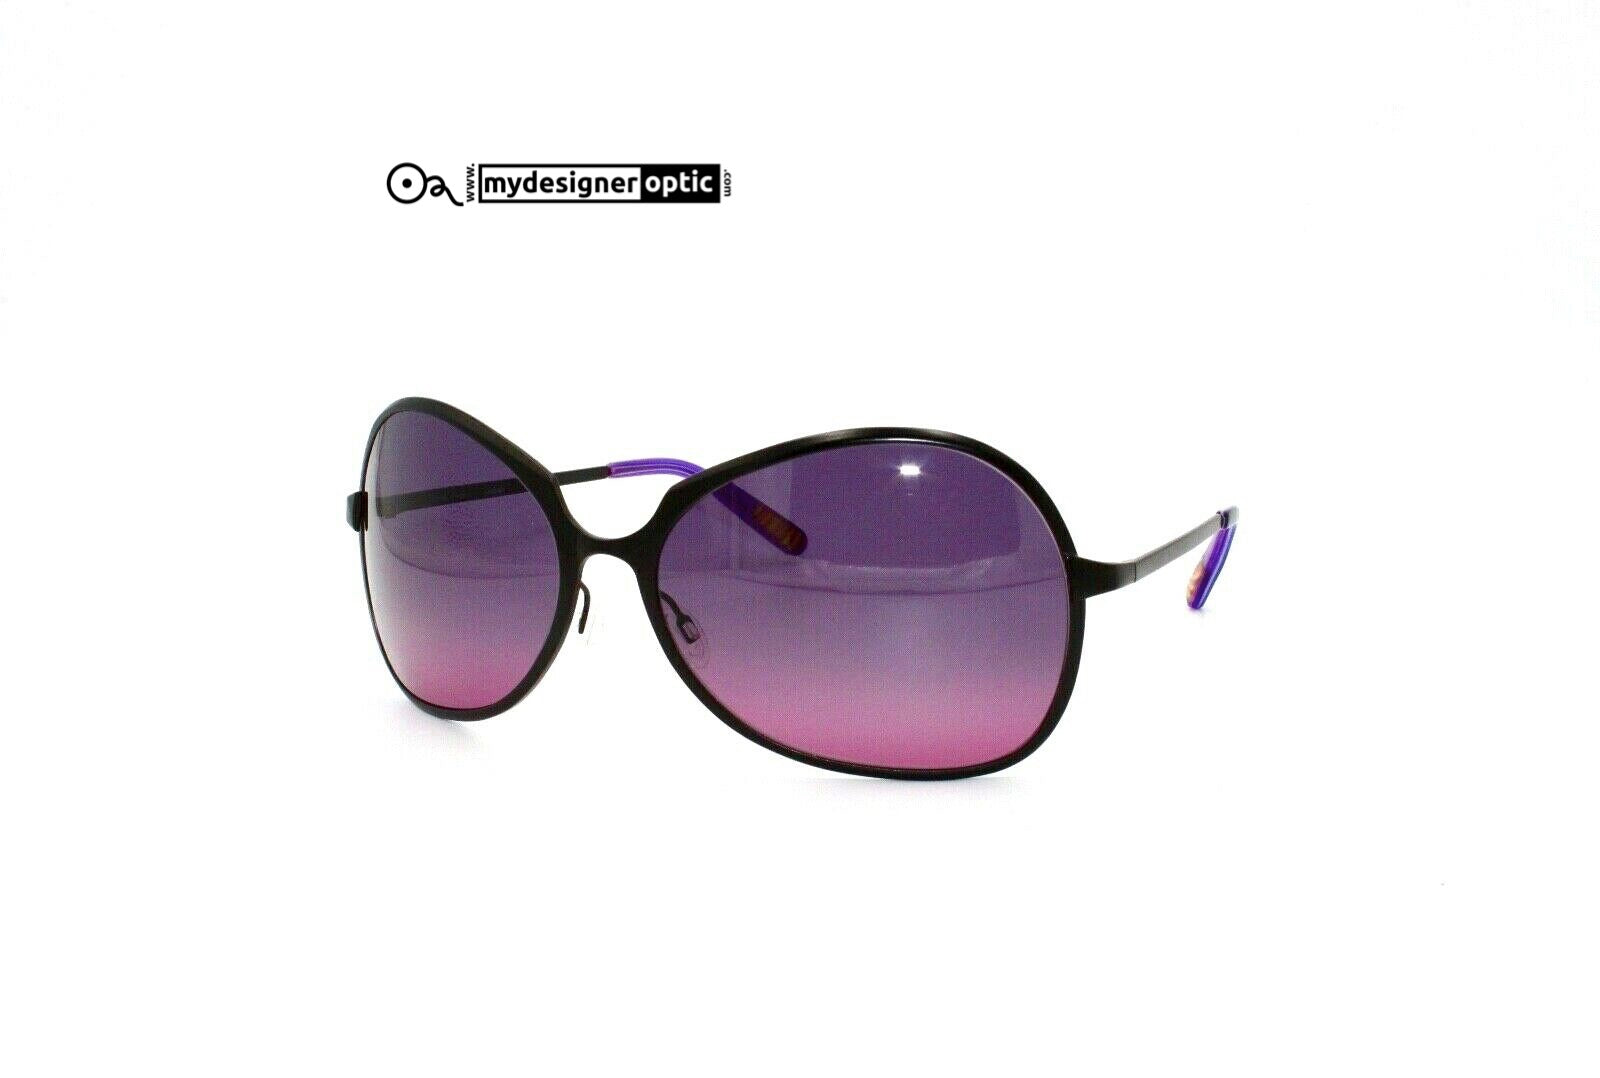 Paul Smith Sunglasses P.S-832 OX 66-17-125 Made in Japan (Dead Stock) - Mydesigneroptic